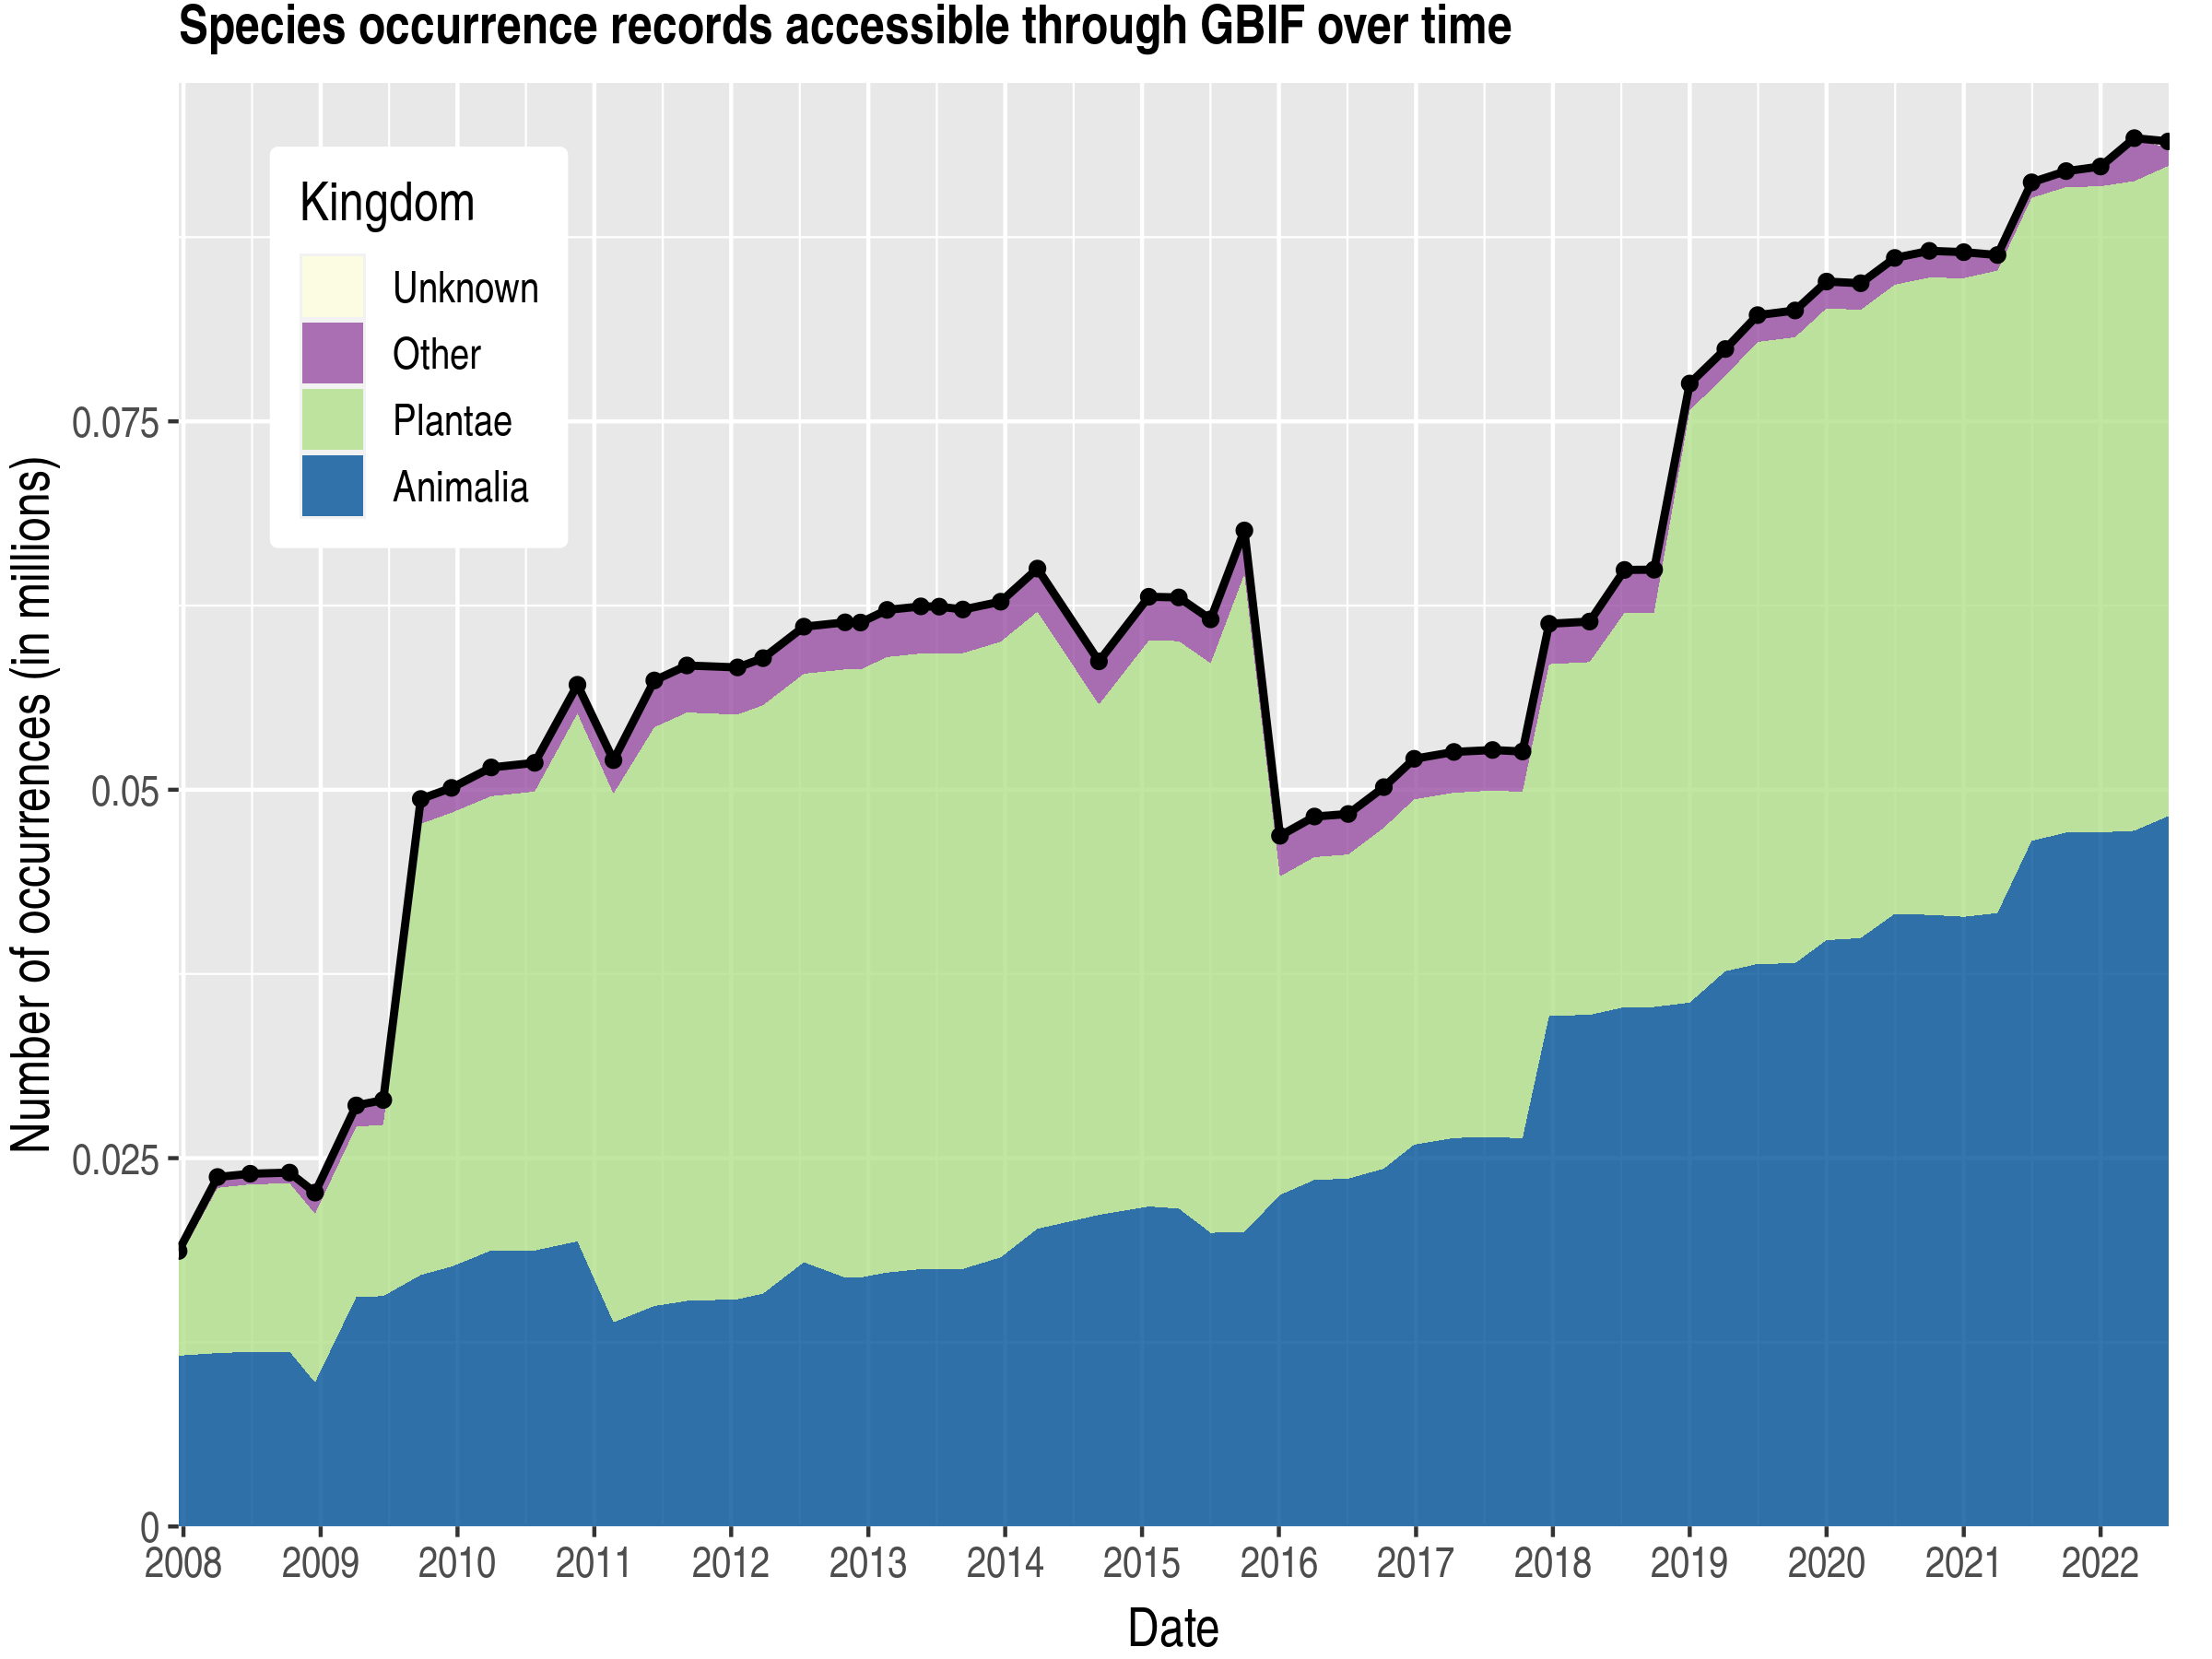 Data trend of records by kingdom about Equatorial Guinea